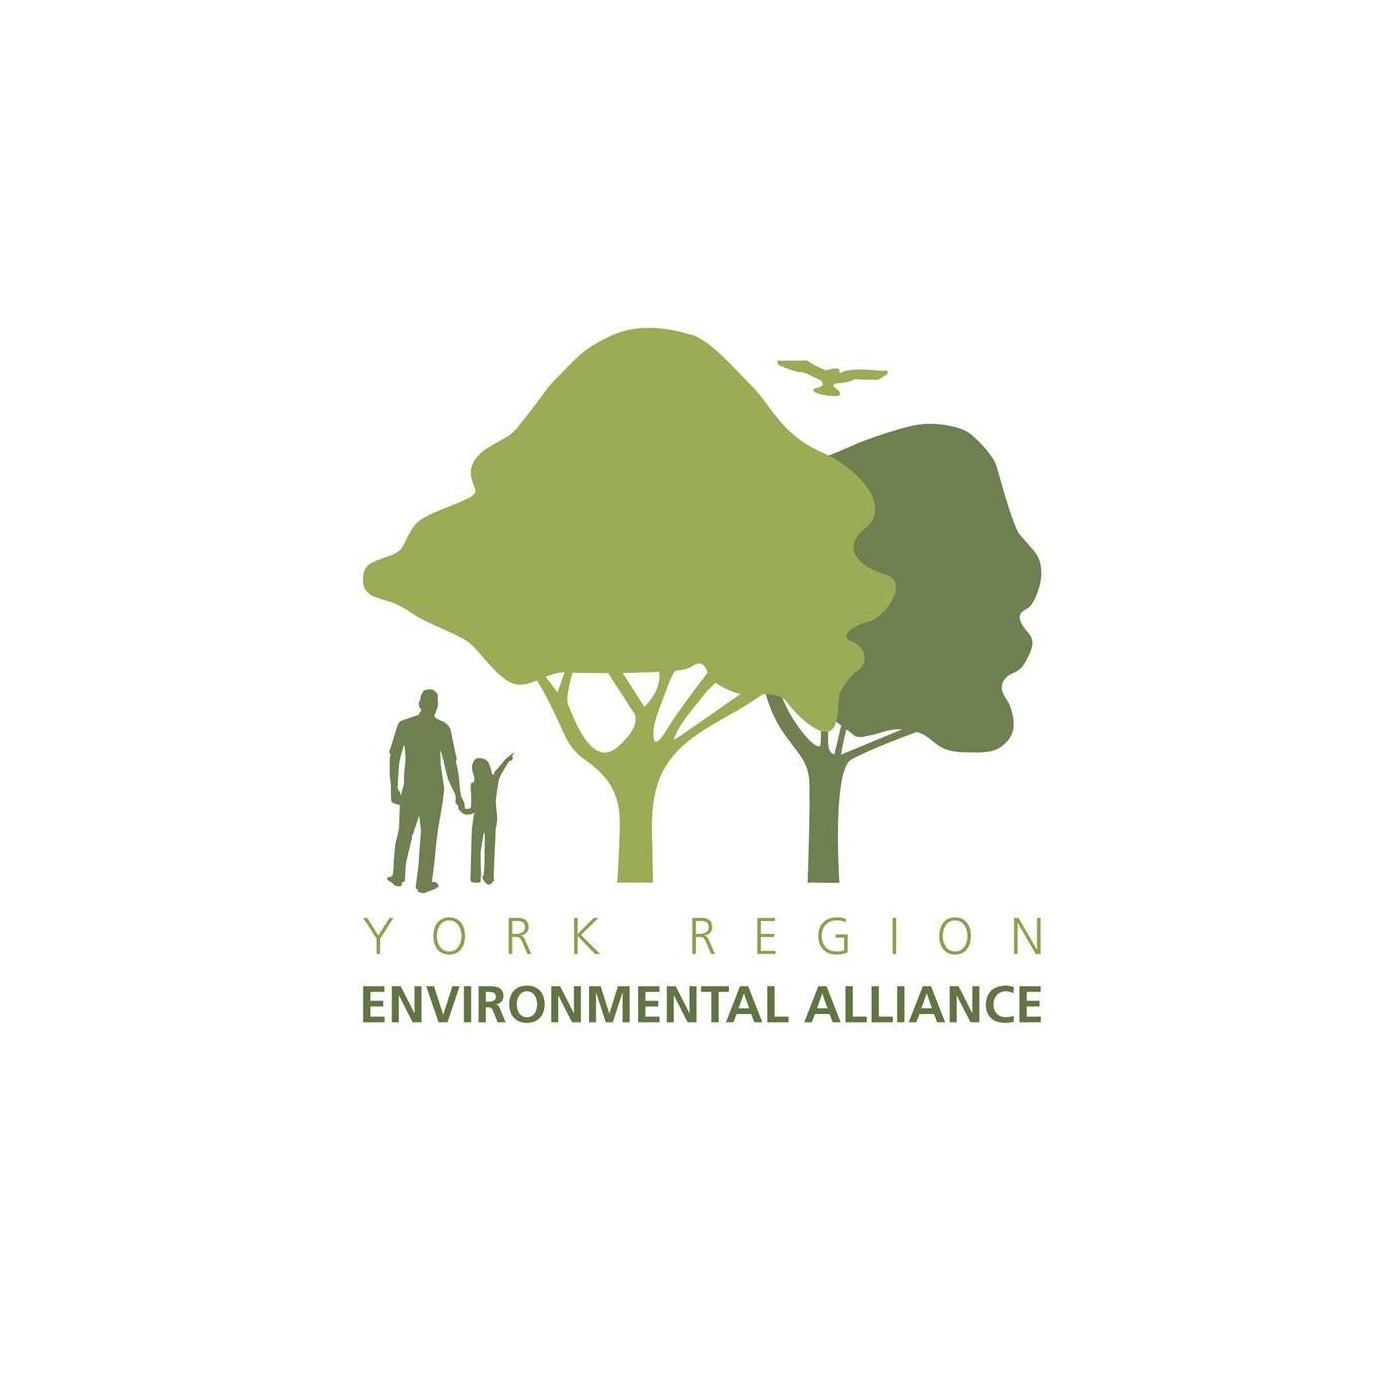 York Region Environmental Alliance logo